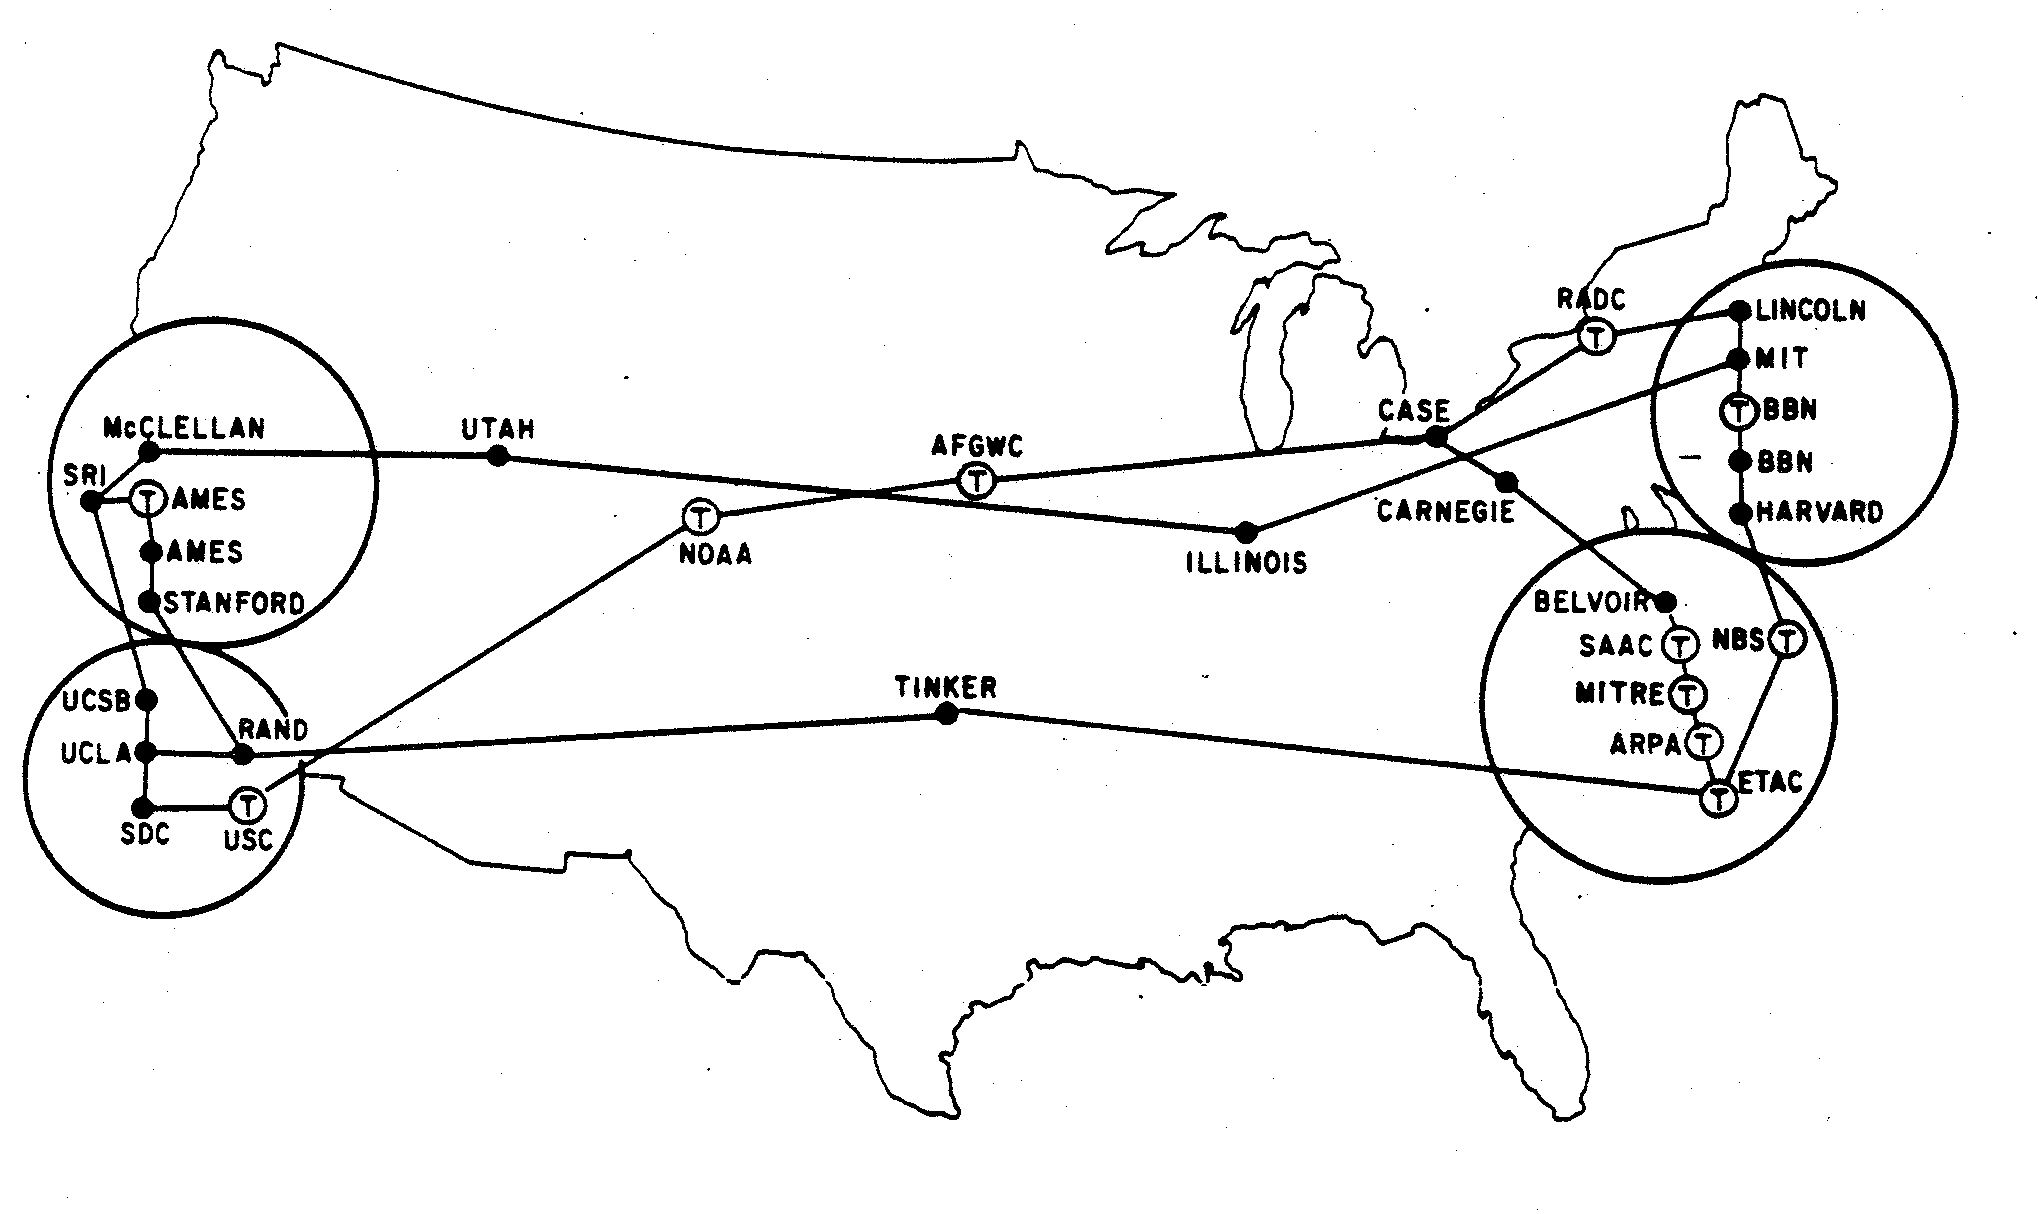 a history of internet in comparison to arpanet Internet history timeline: arpanet to the world wide web in 1961, he wrote about arpanet, the predecessor of the internet, in a paper entitled information flow in large communication nets.